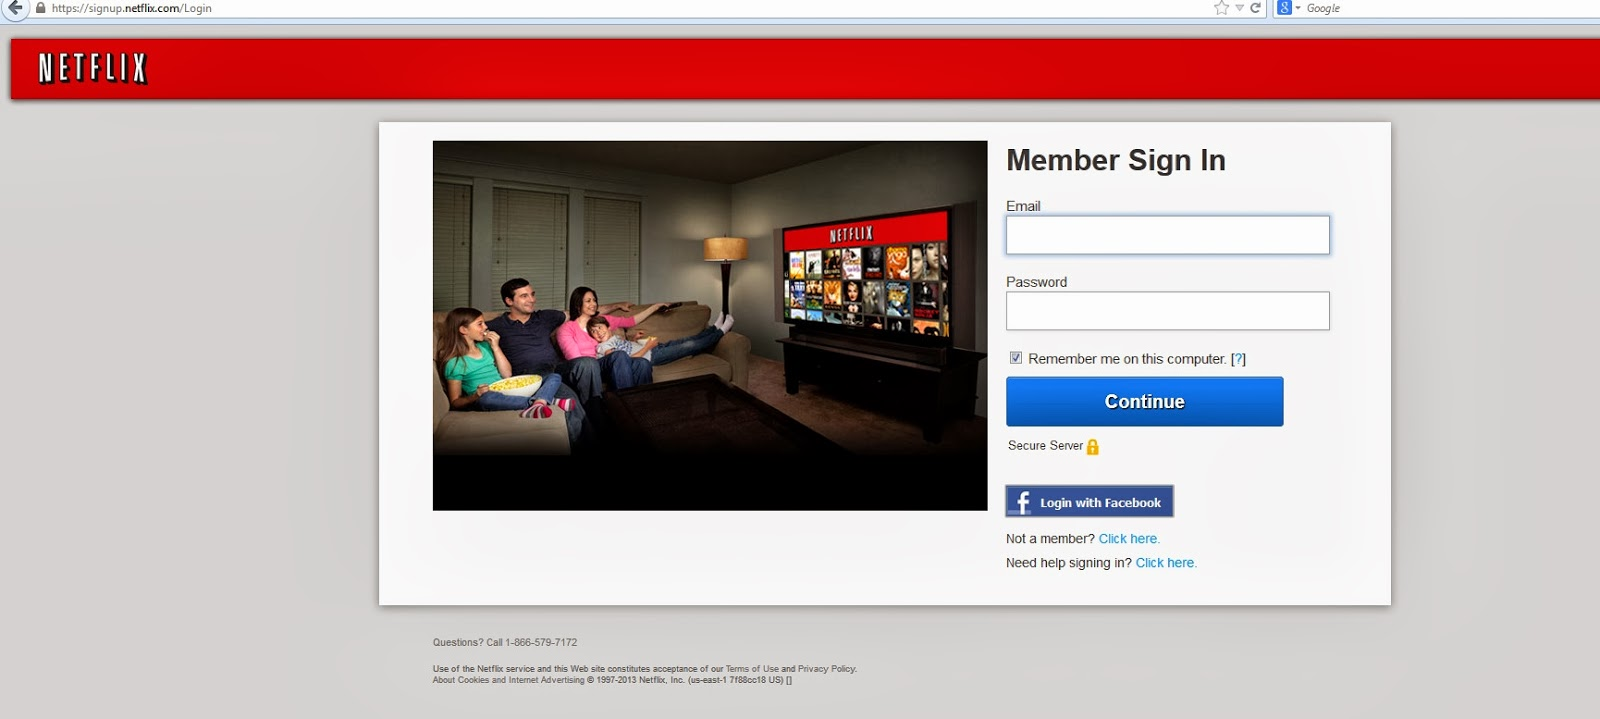 free netflix logins (usa) - 2013 list updated. | free netflix logins